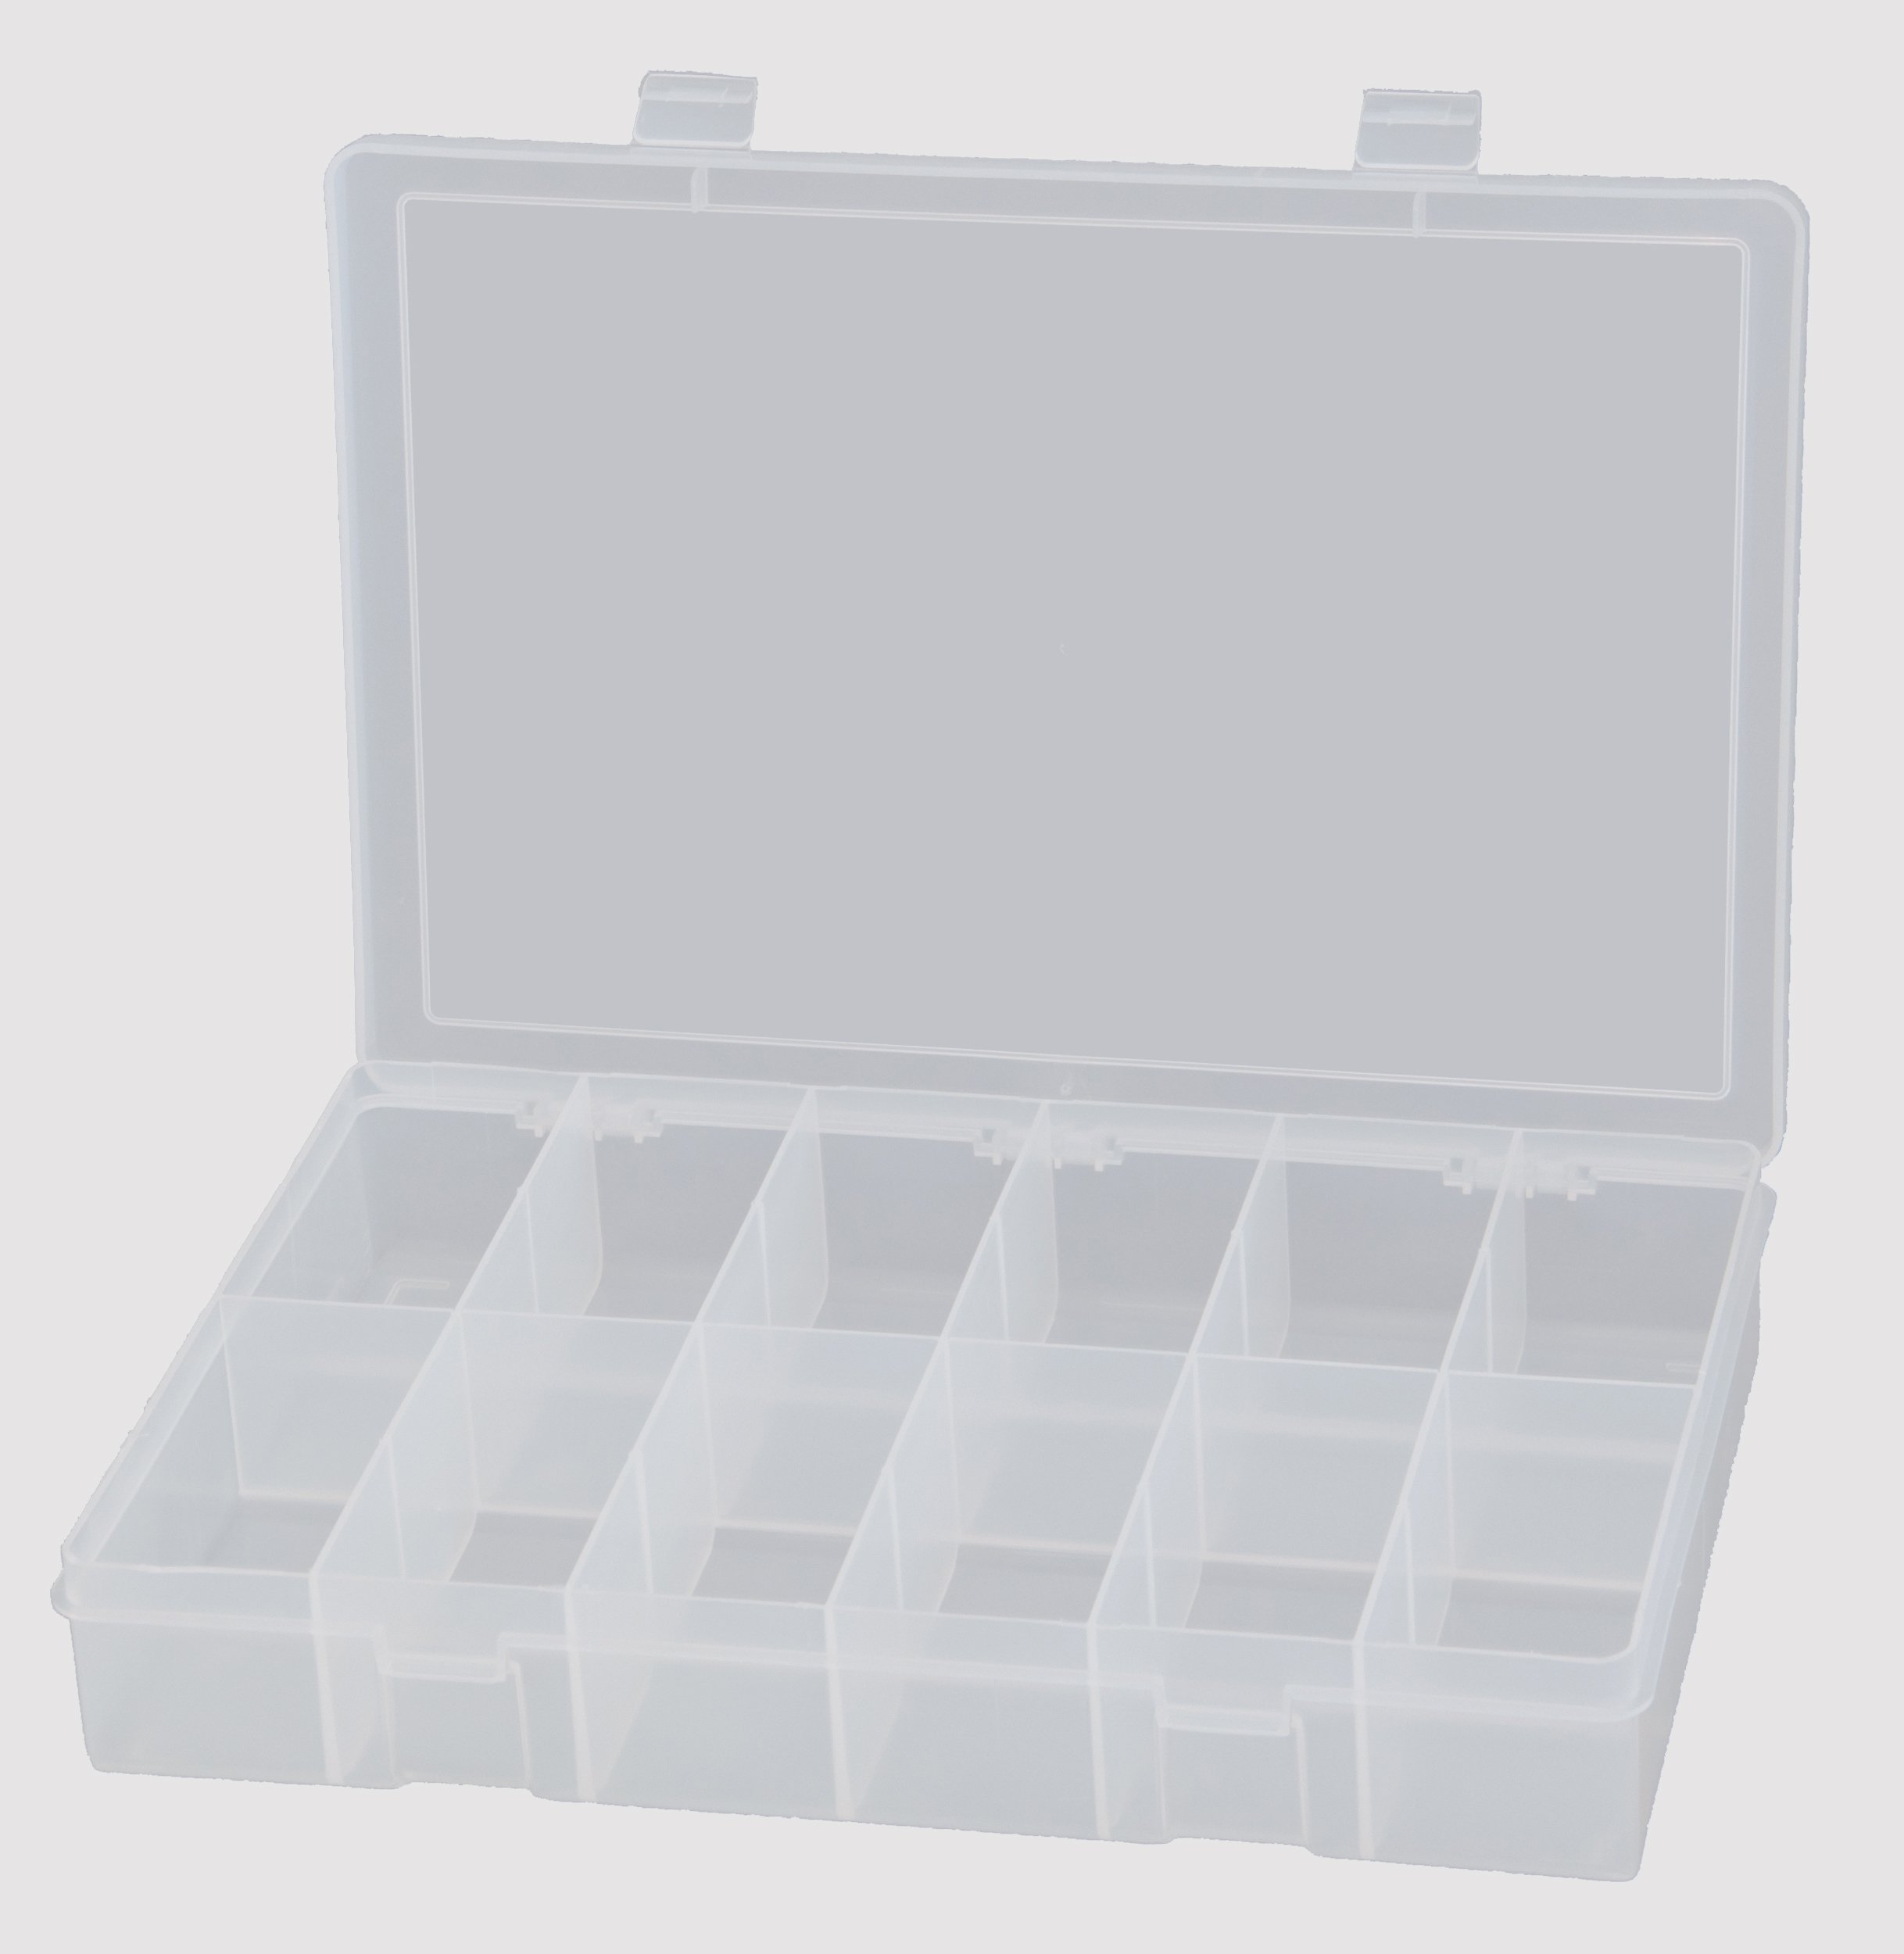 Durham LP12-CLR Polypropylene Large Box, 12 Compartment, 9'' Length x 13-1/8'' Width x 2-5/16'' Height, Clear by Durham (Image #1)